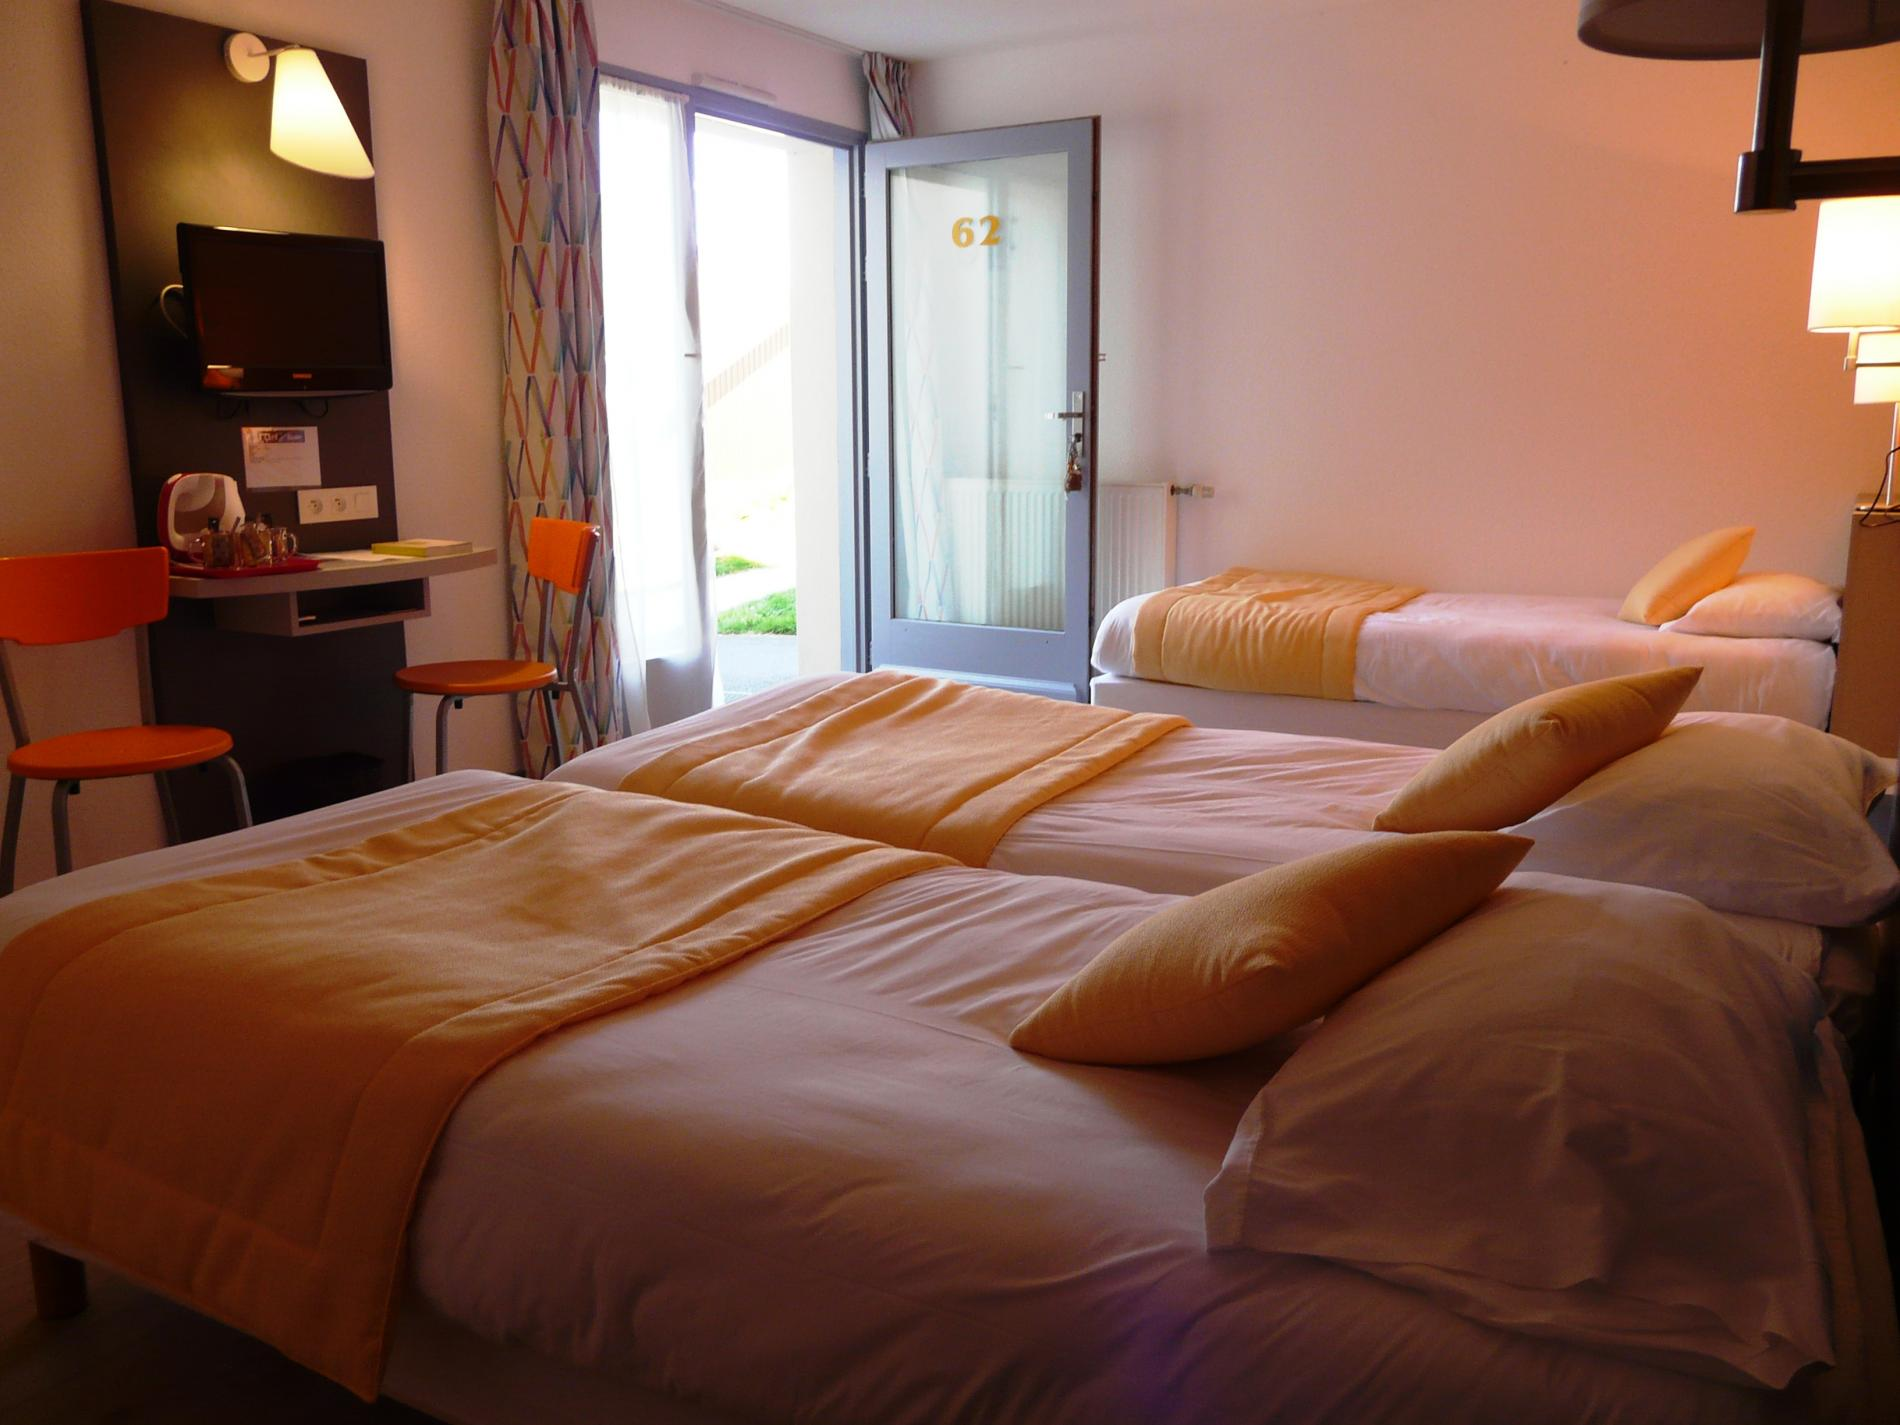 Offers And Rates Hotel De La Baie In Paimpol Comfort Category 3 People